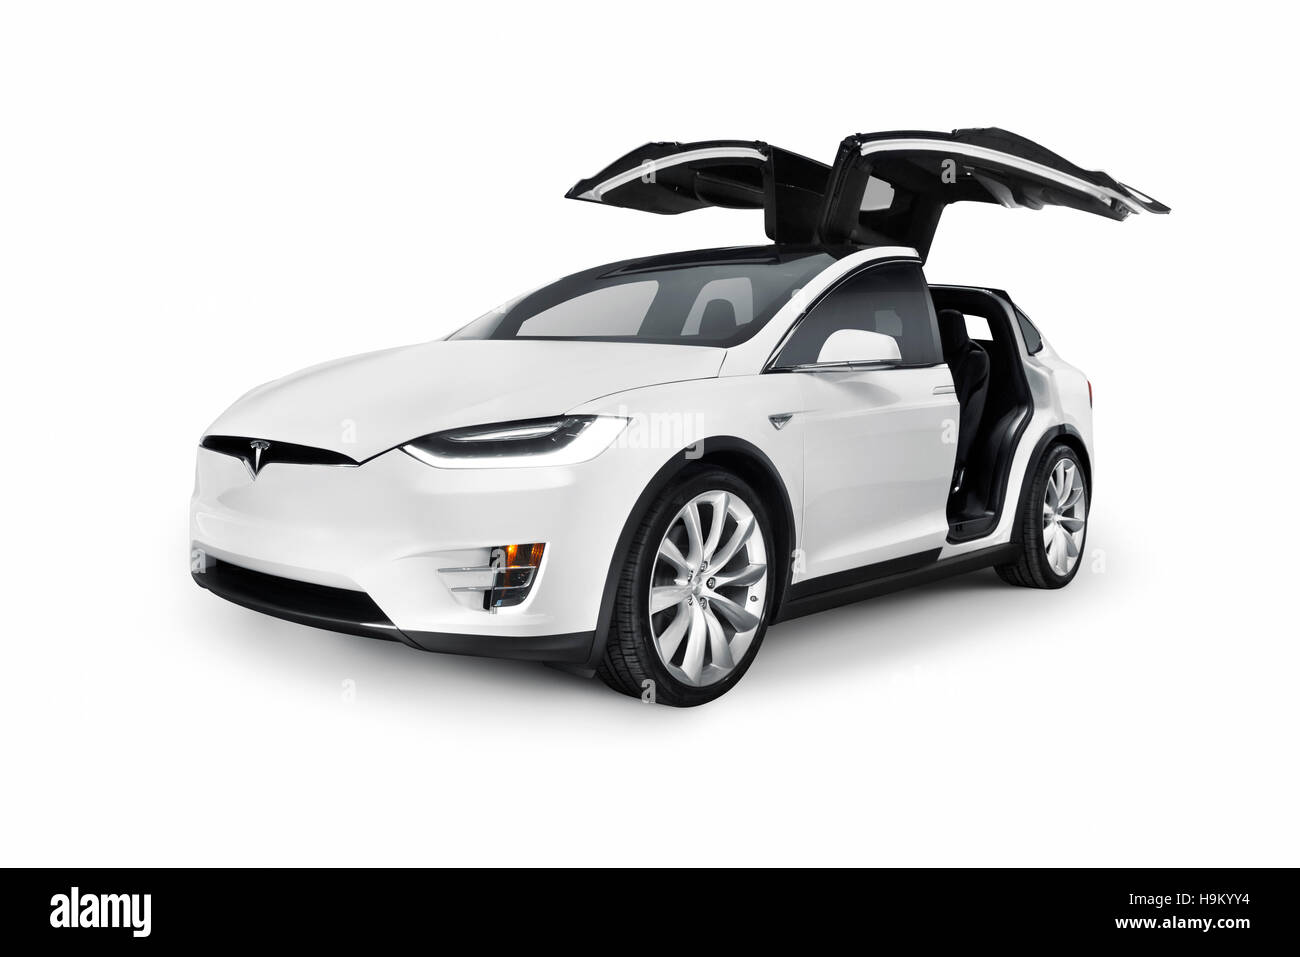 White 2017 Tesla Model X luxury SUV electric car with open falcon wing doors  sc 1 st  Alamy & White 2017 Tesla Model X luxury SUV electric car with open falcon ...